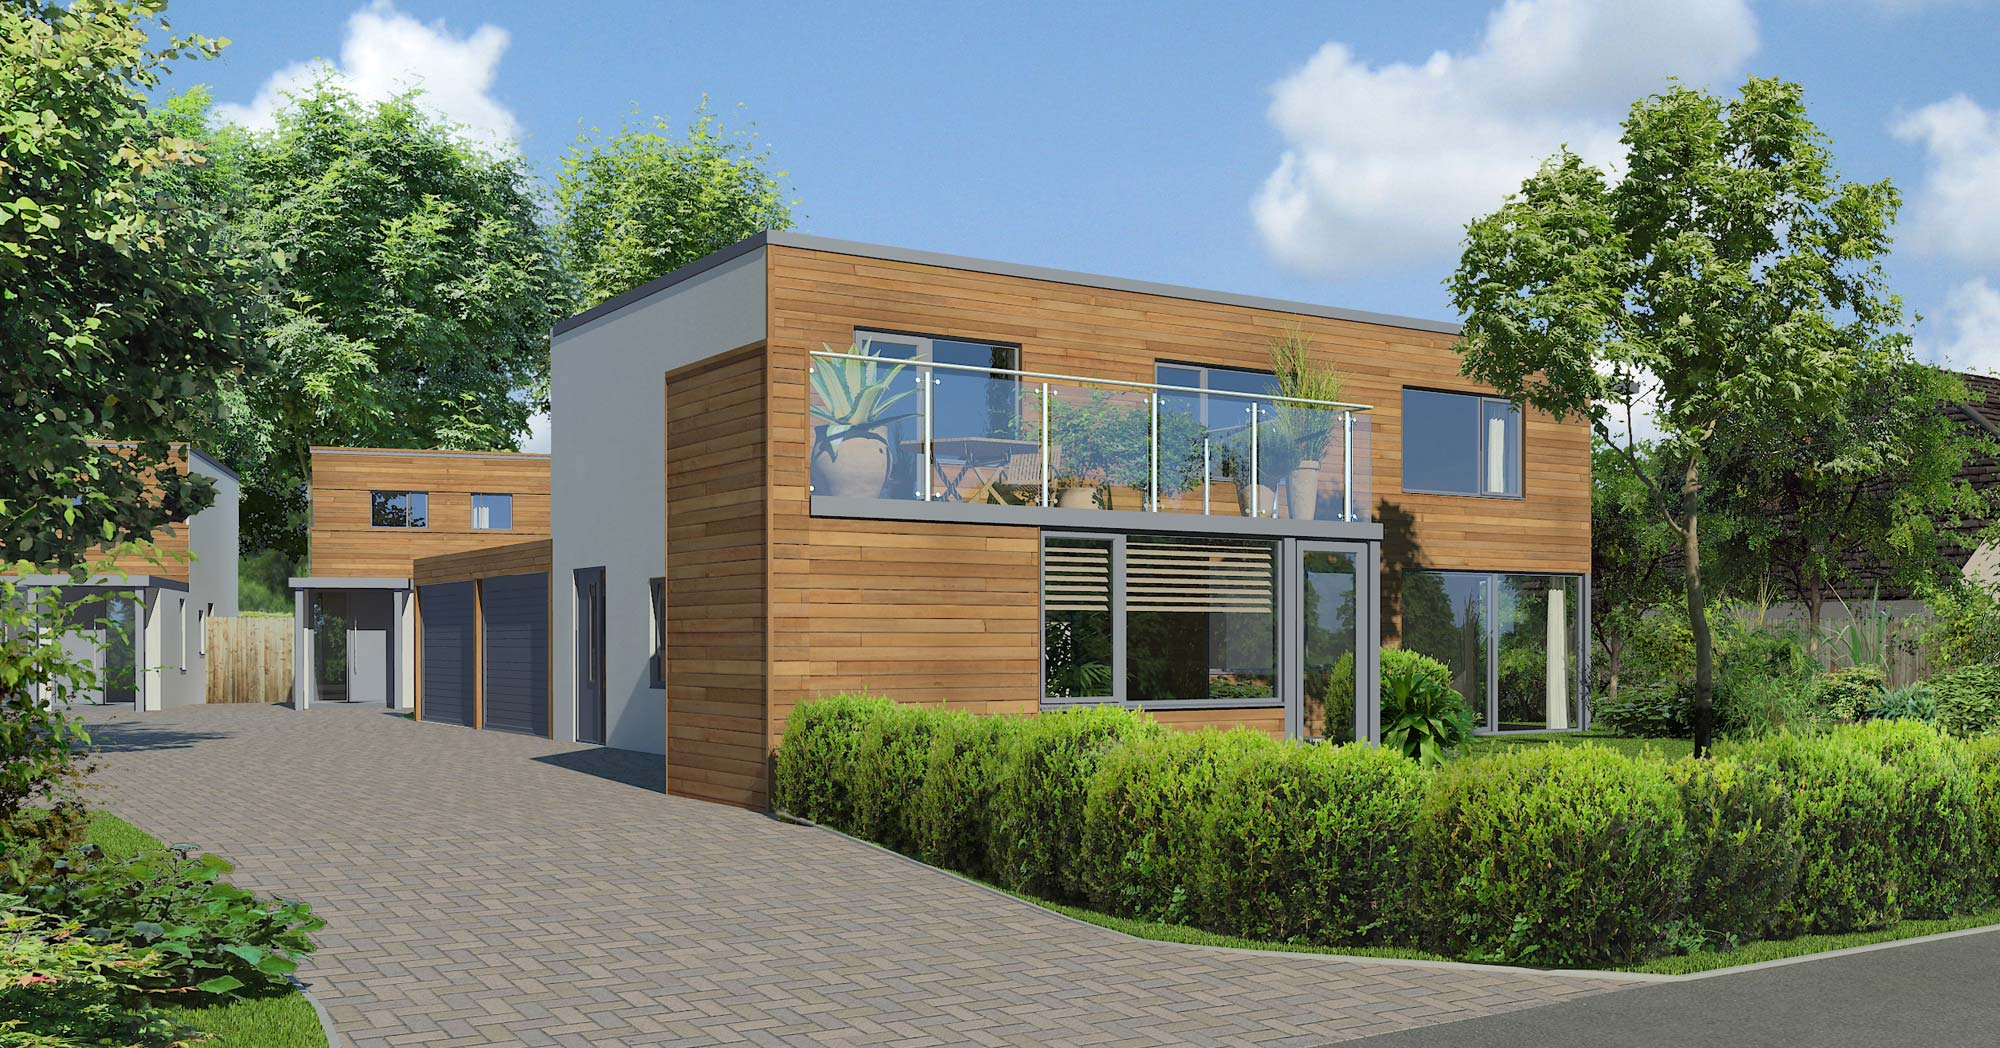 Greenstead Ltd Home To Sustainable Housing In Suffolk